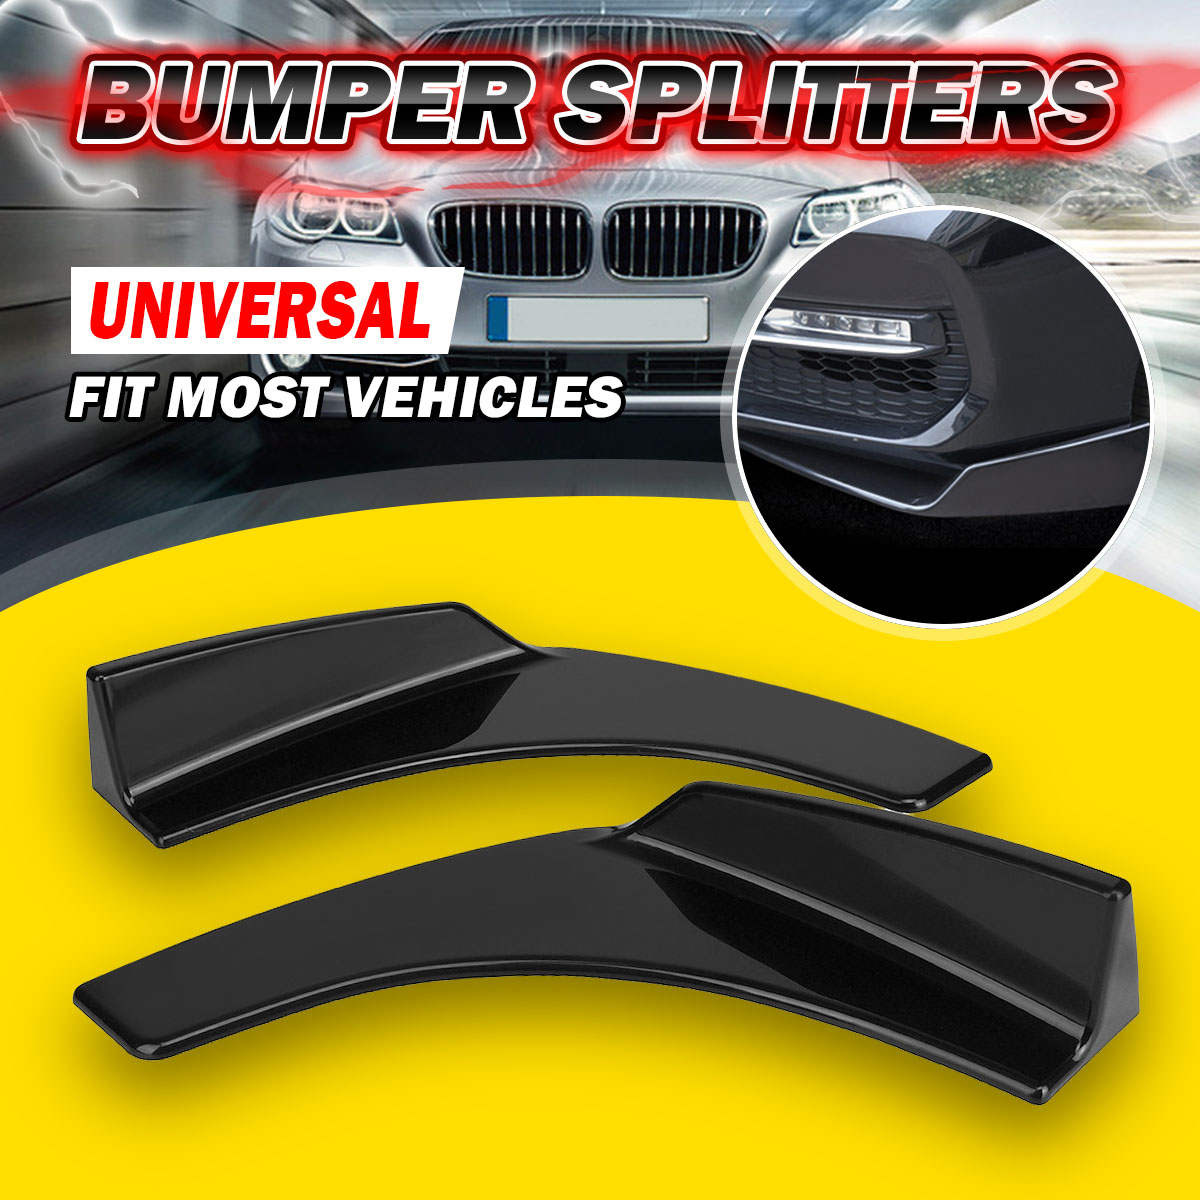 Pair Universal Car <font><b>Front</b></font> Bumper <font><b>Lip</b></font> Deflector Diffuser Spoiler Splitter Canard <font><b>Lip</b></font> For BMW <font><b>W204</b></font> E90 E92 For <font><b>Benz</b></font> For Audi A4 B8 image